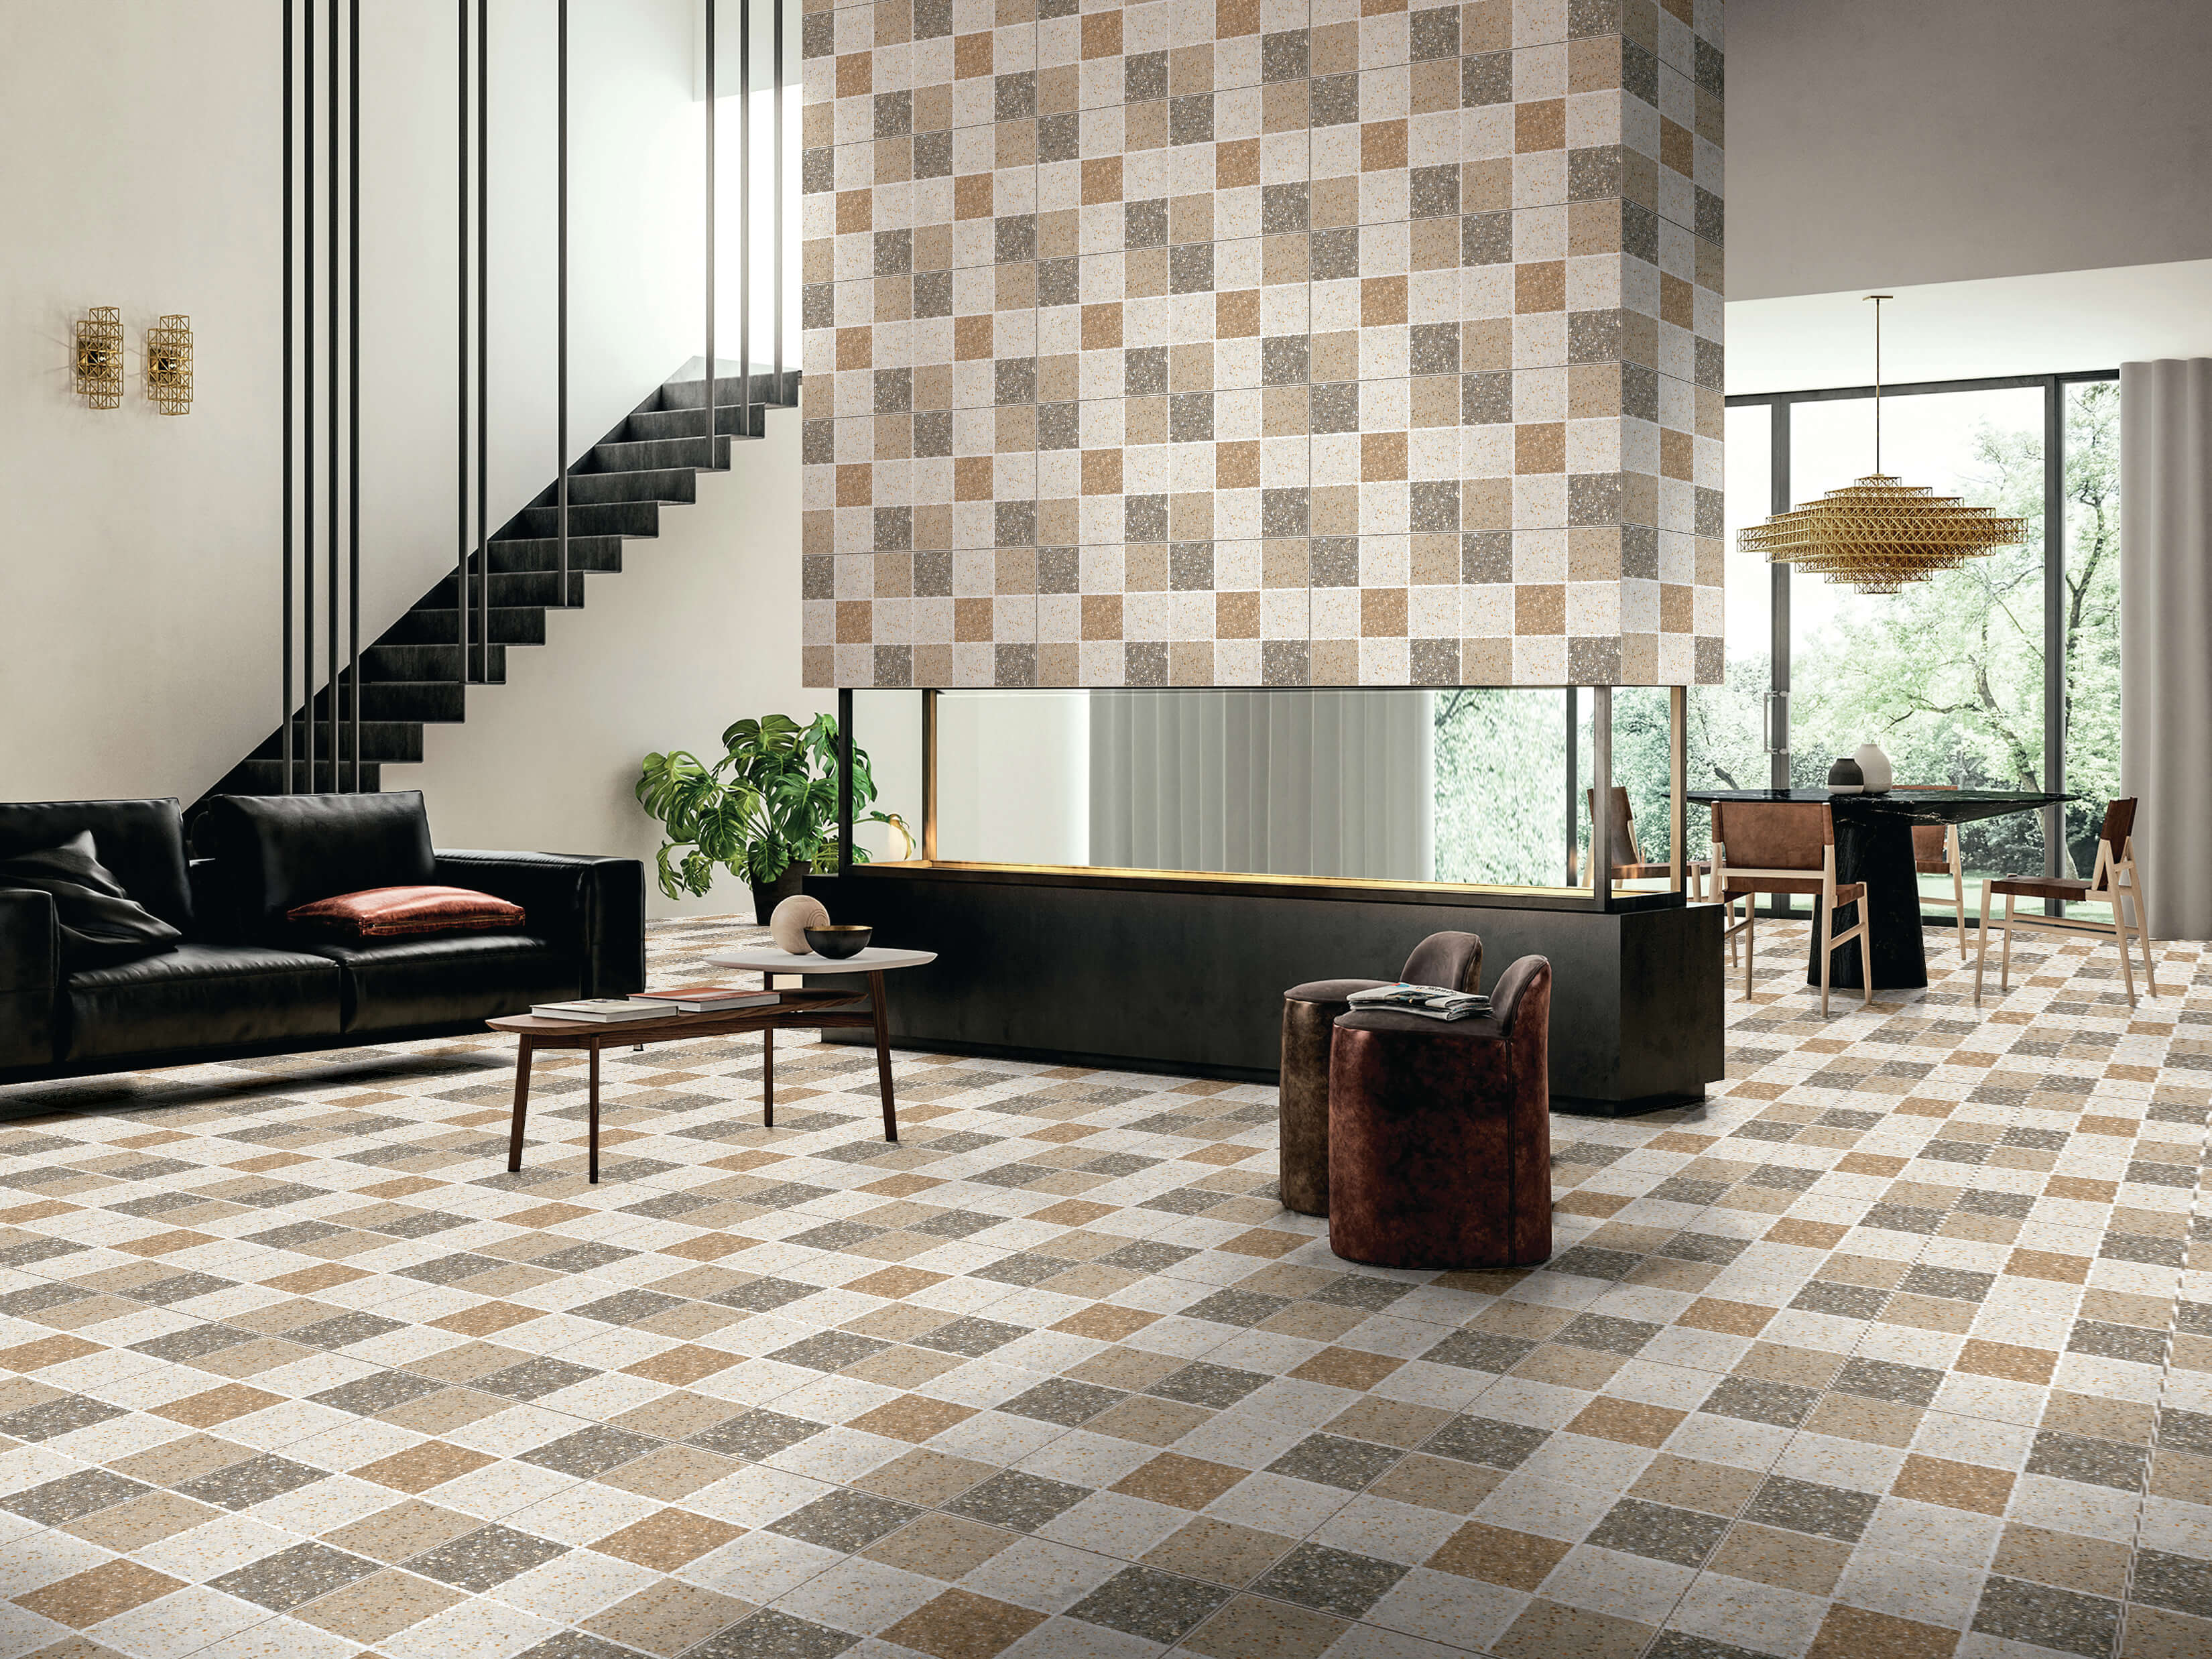 Orient Bell fusion tile series